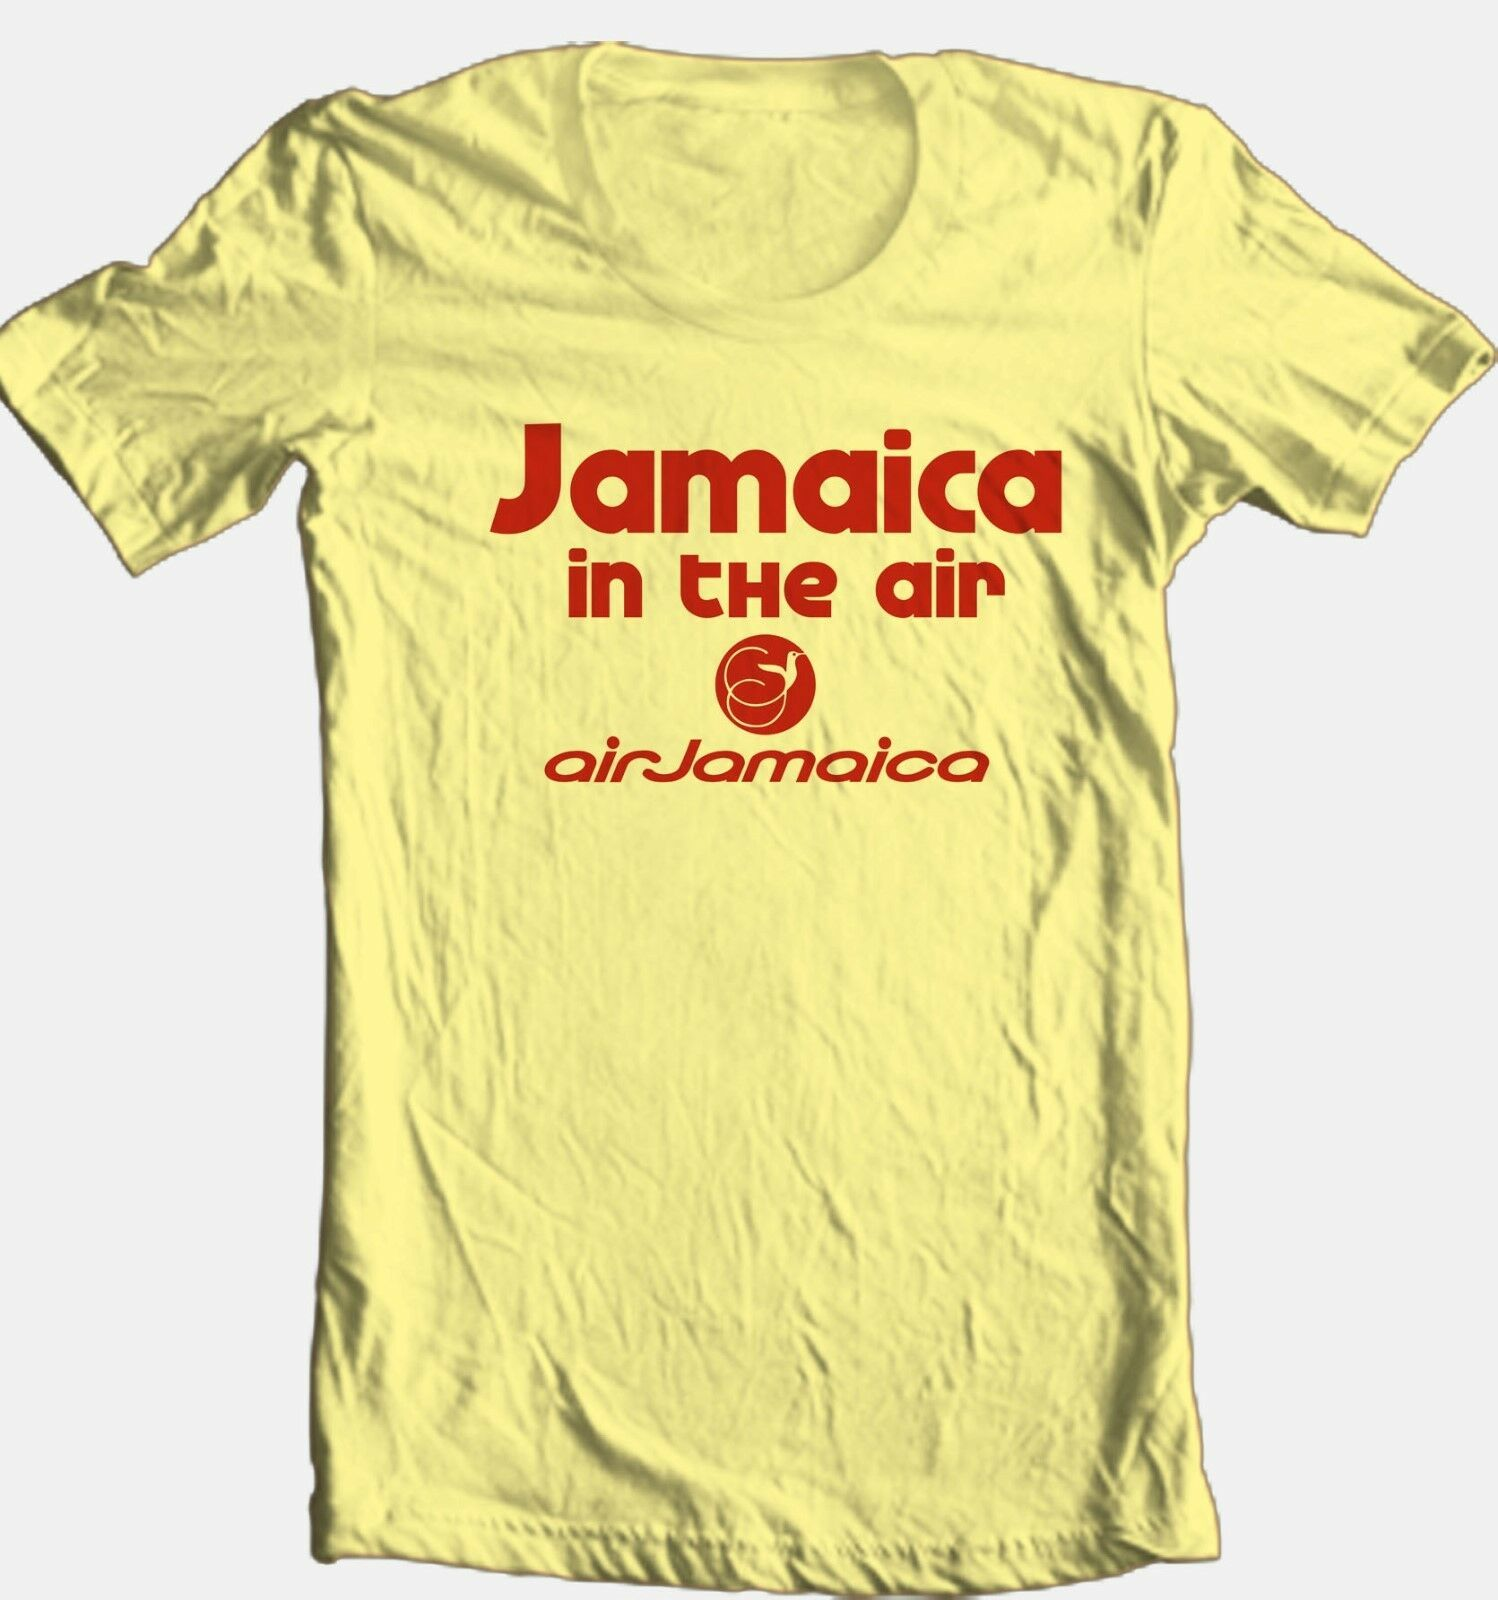 Jamaica Airlines T-shirt 100% cotton vintage style graphic printed tee reggae